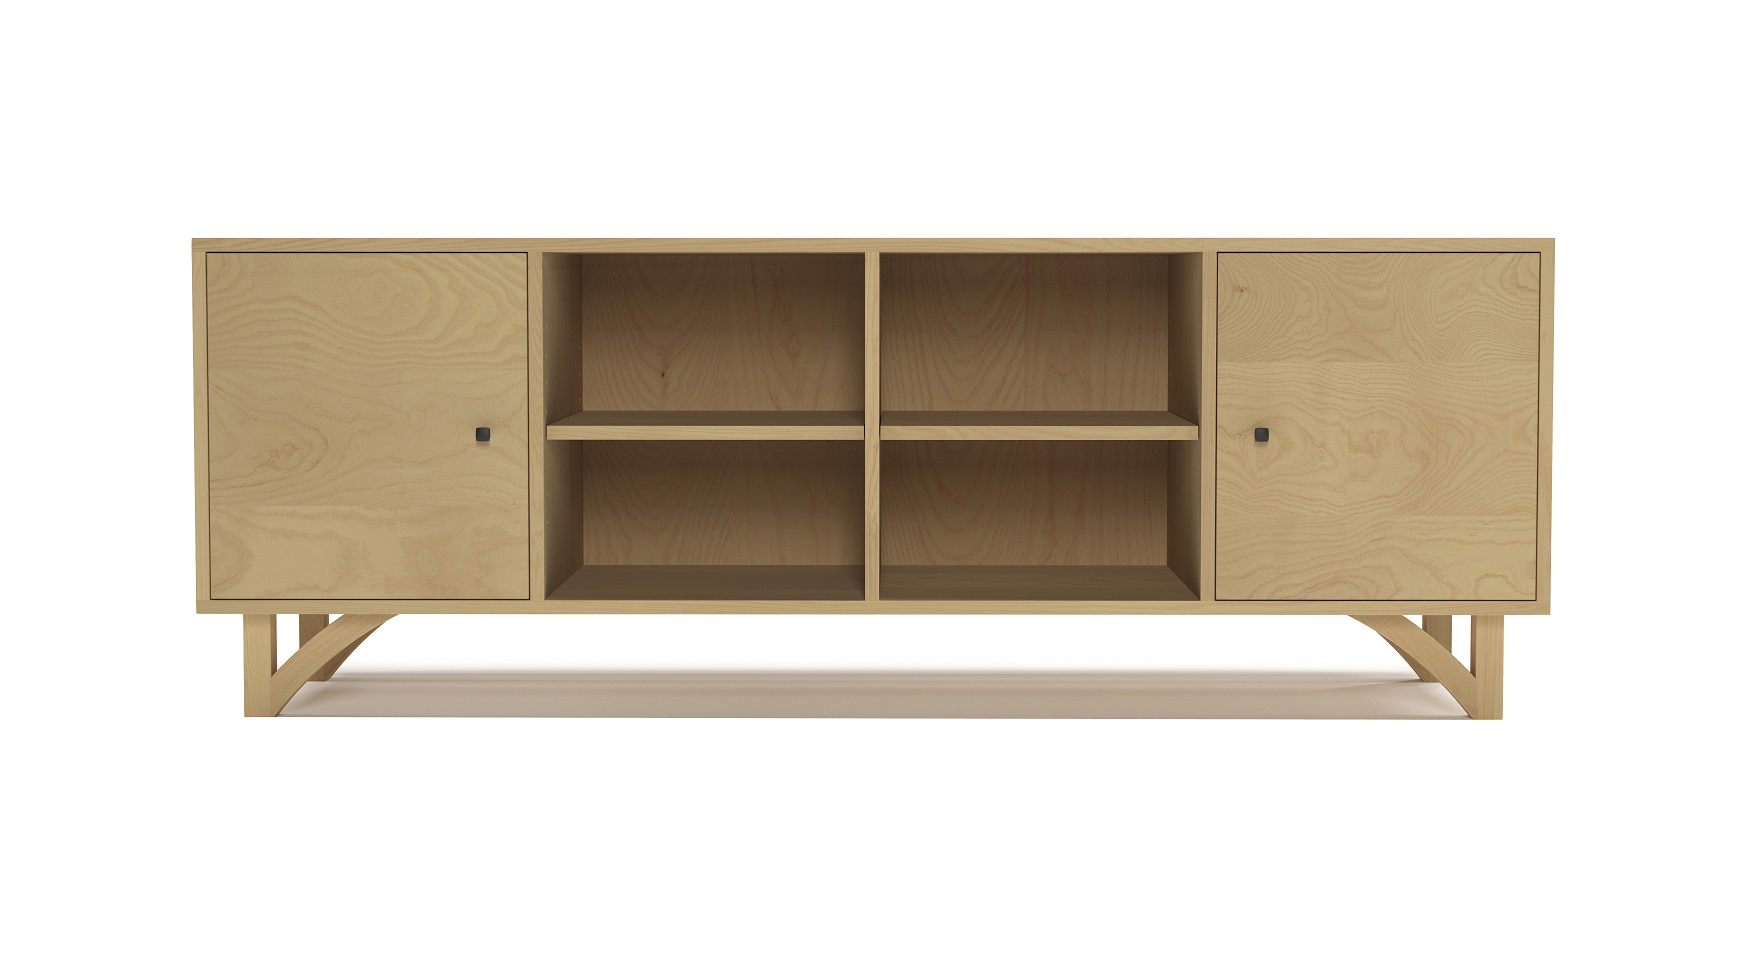 Ash modern furniture cabinet with two doors and with hand-cut legs